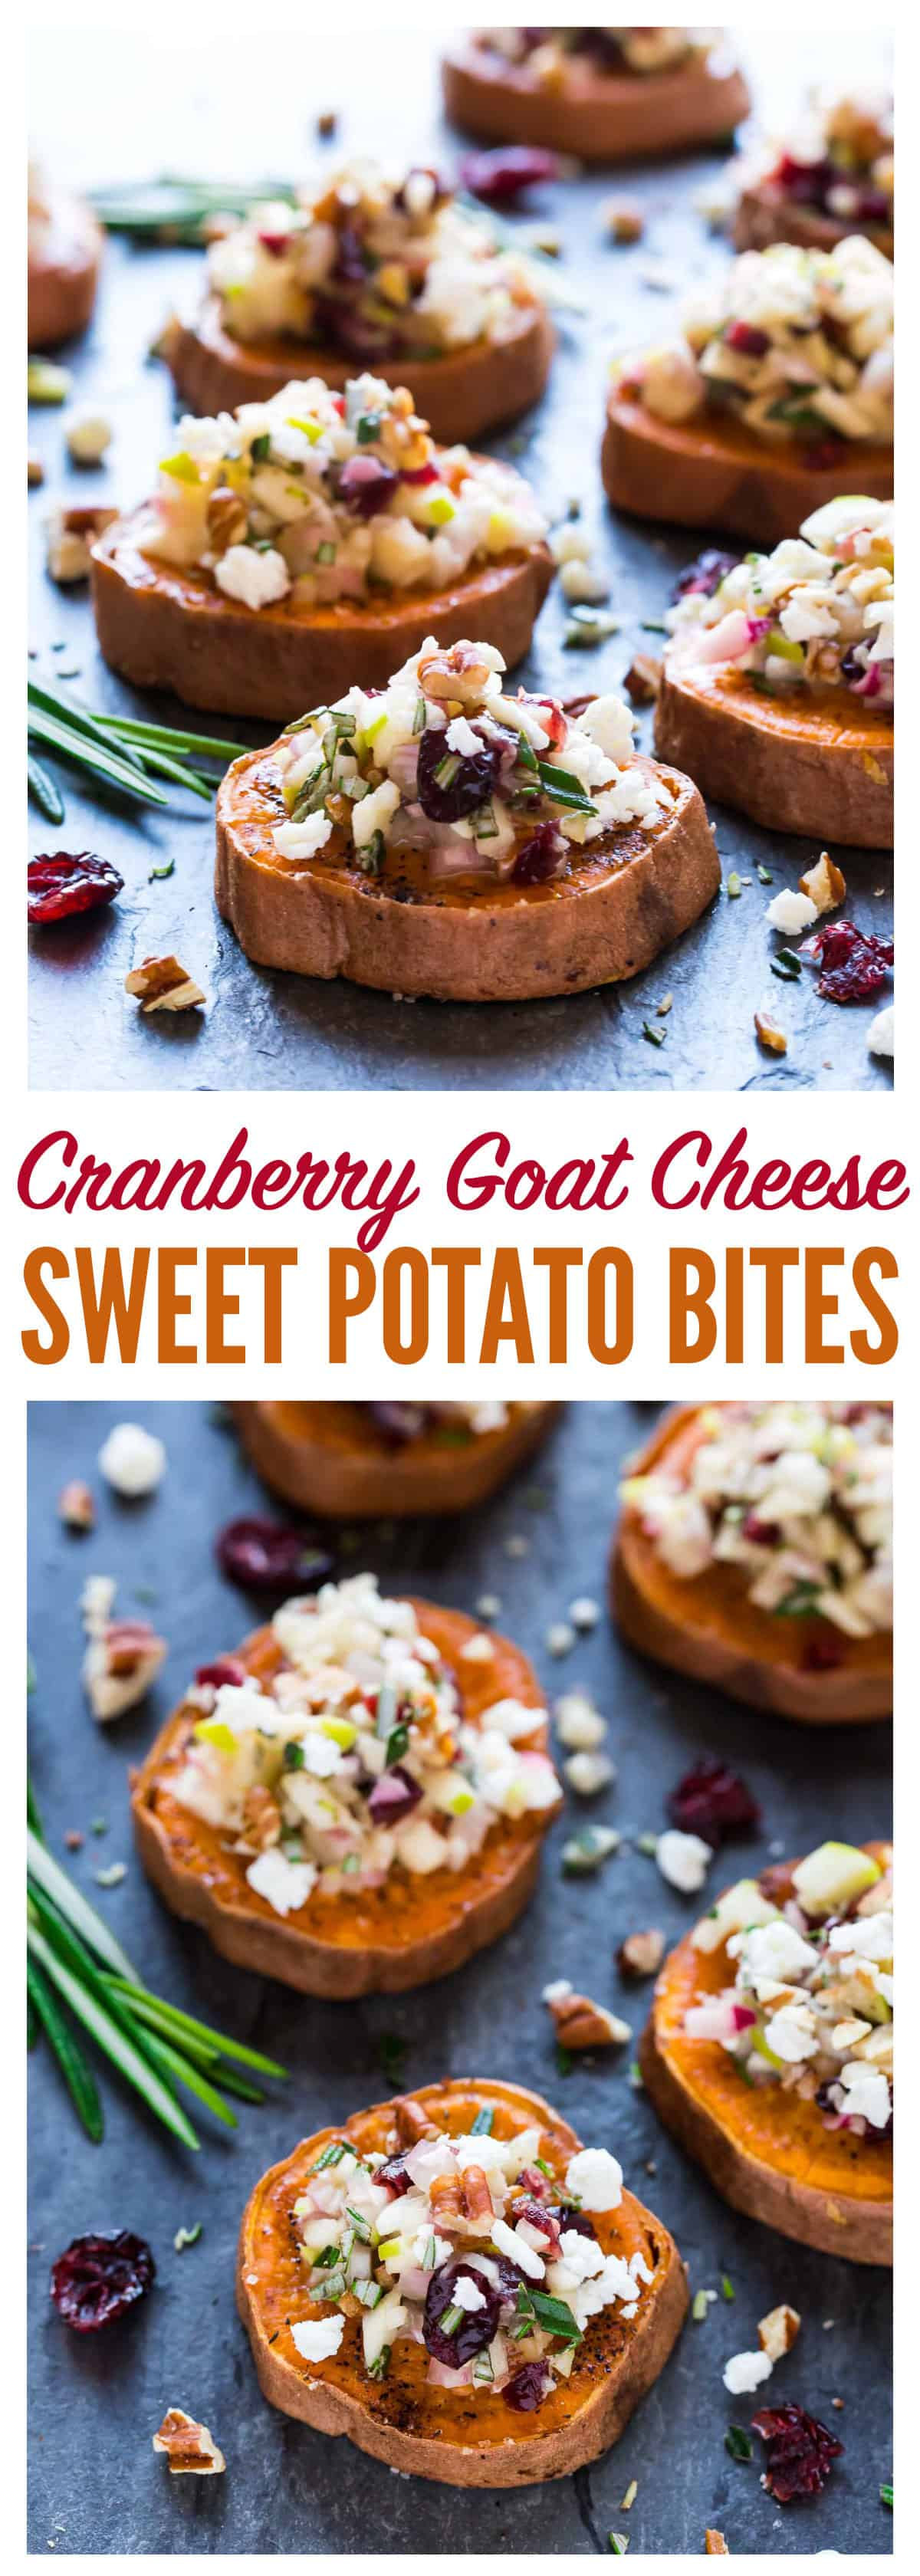 Baked Sweet Potato Rounds with Goat Cheese, Cranberry, Apple, and Pecans. An easy and addictive sweet potato appetizer! Healthy baked sweet potato slices roasted until crispy, then topped with a delicious combination of holiday flavors. Perfect easy appetizer for Thanksgiving, Christmas, and any party! #appetizer #recipes #healthy #glutenfree